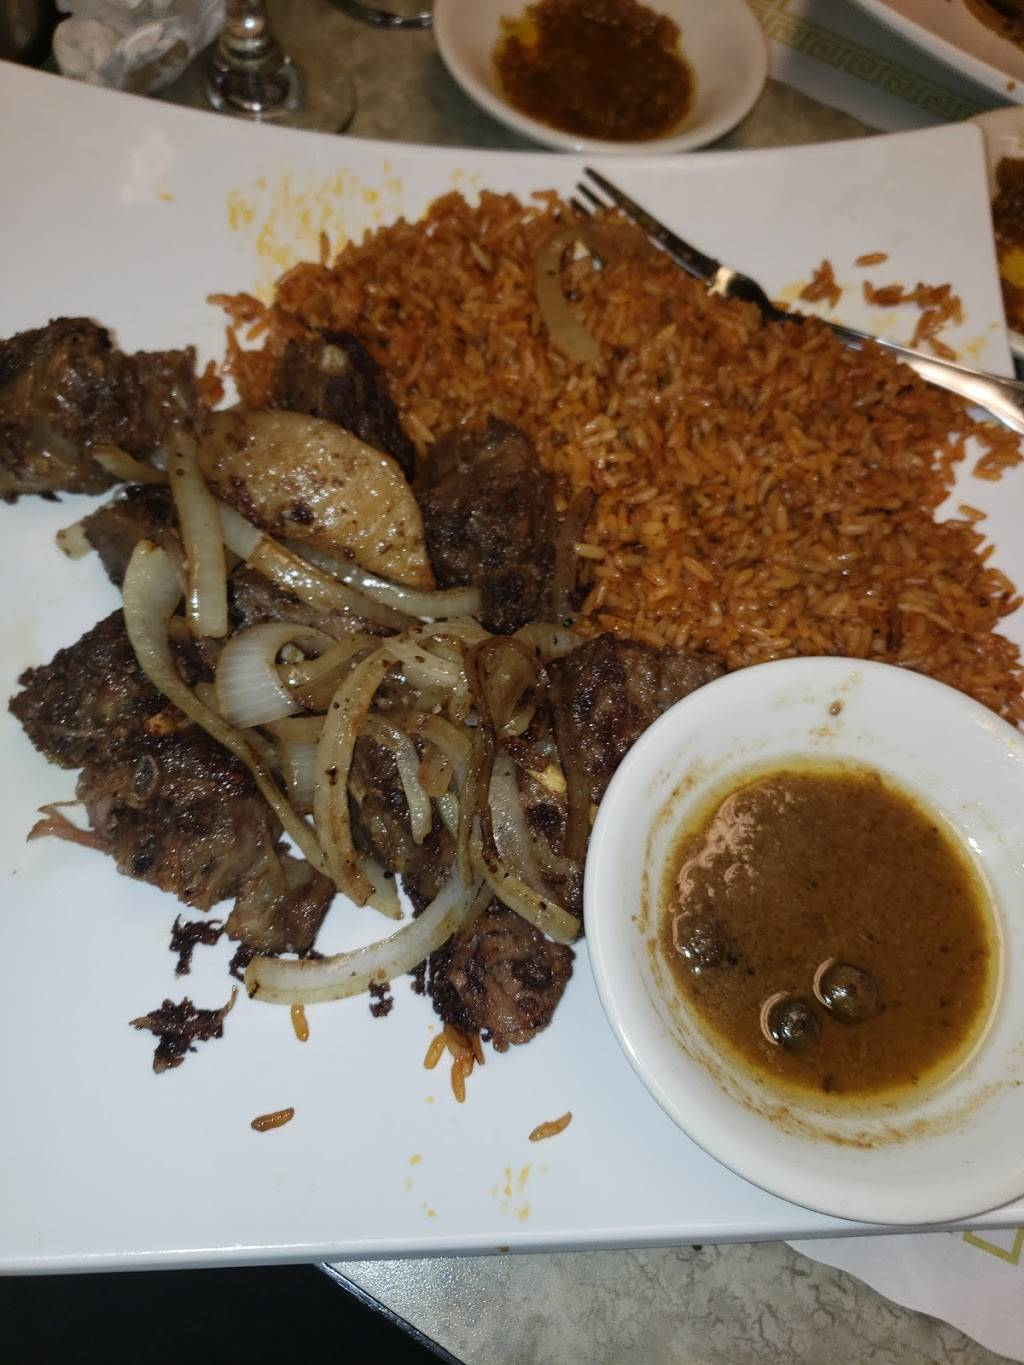 Kings and Queens Liberian Cuisine | restaurant | 107 Fairfield Ave, Upper Darby, PA 19082, USA | 4844663359 OR +1 484-466-3359